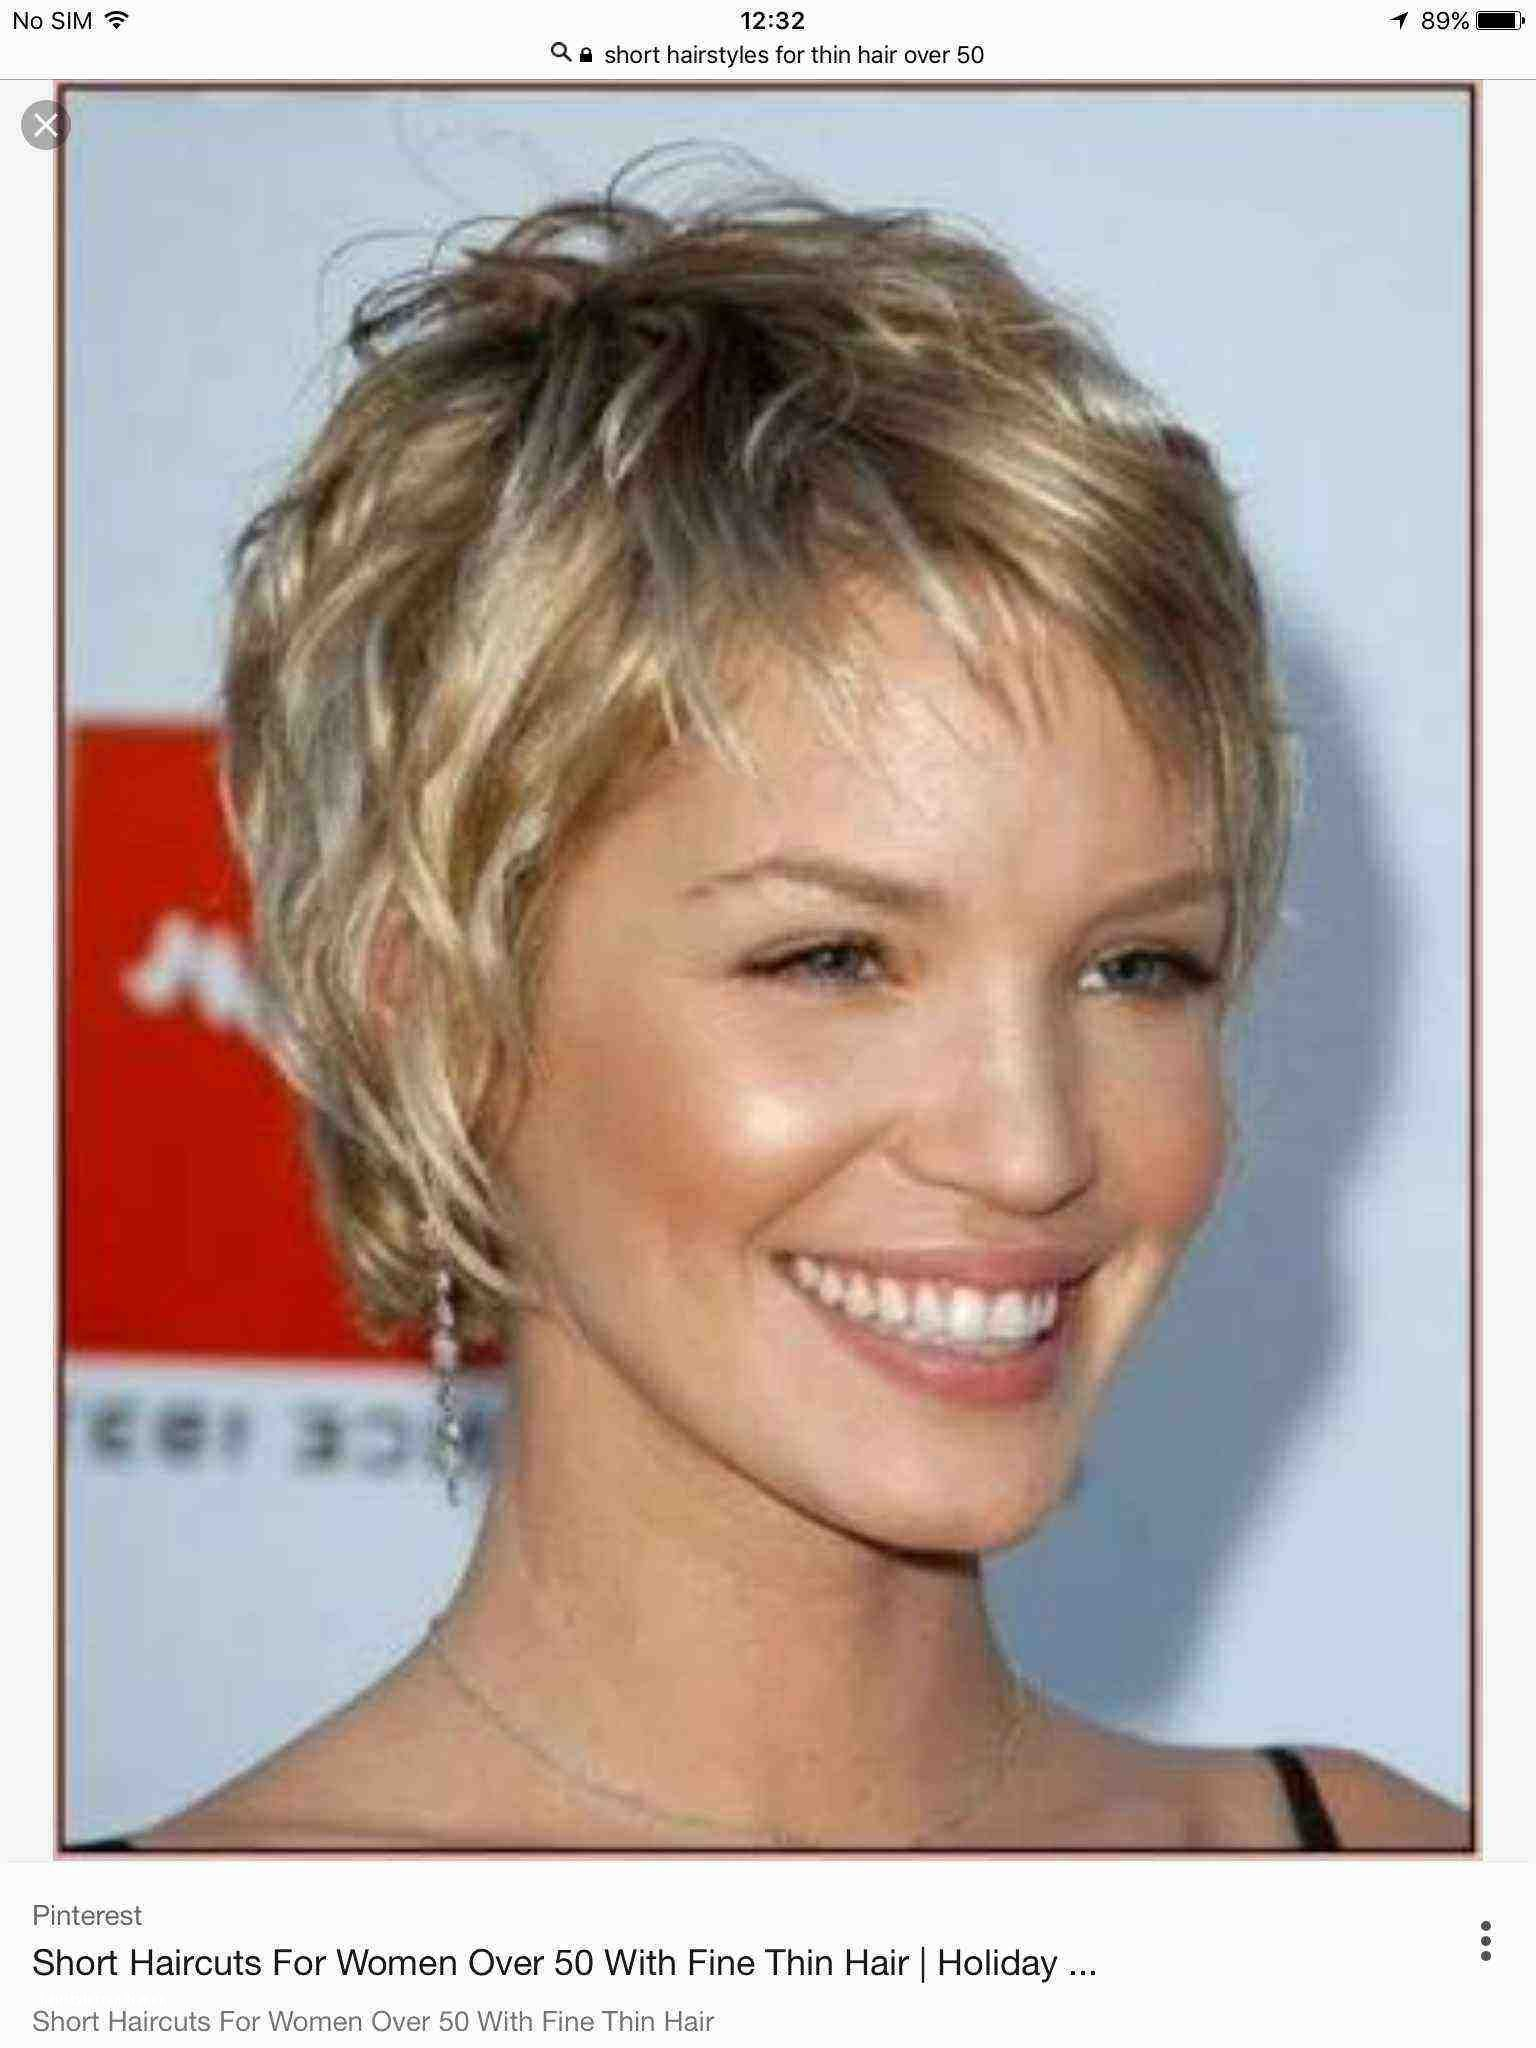 Hairstyles 99 Short Hairstyles Fine Hair Over 40 Beautiful Awesome Short Thin Hair Short Hairstyles Fine Hairstyles For Thin Hair